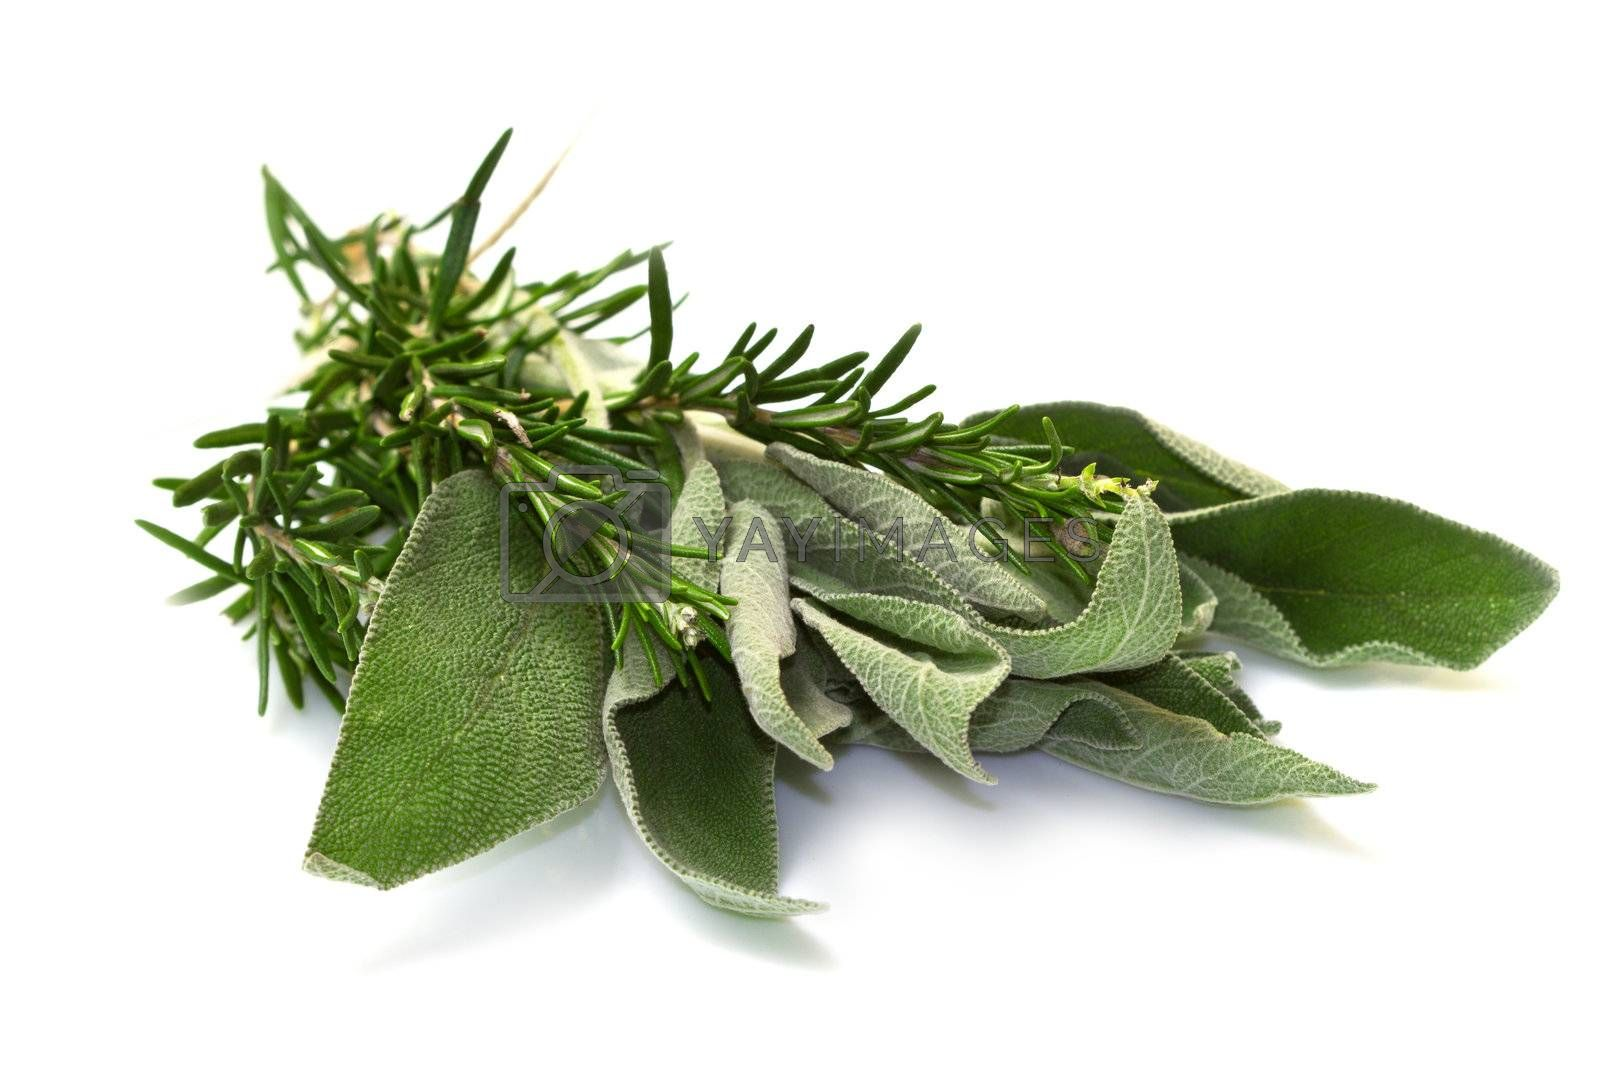 Sage and rosemary on a white background